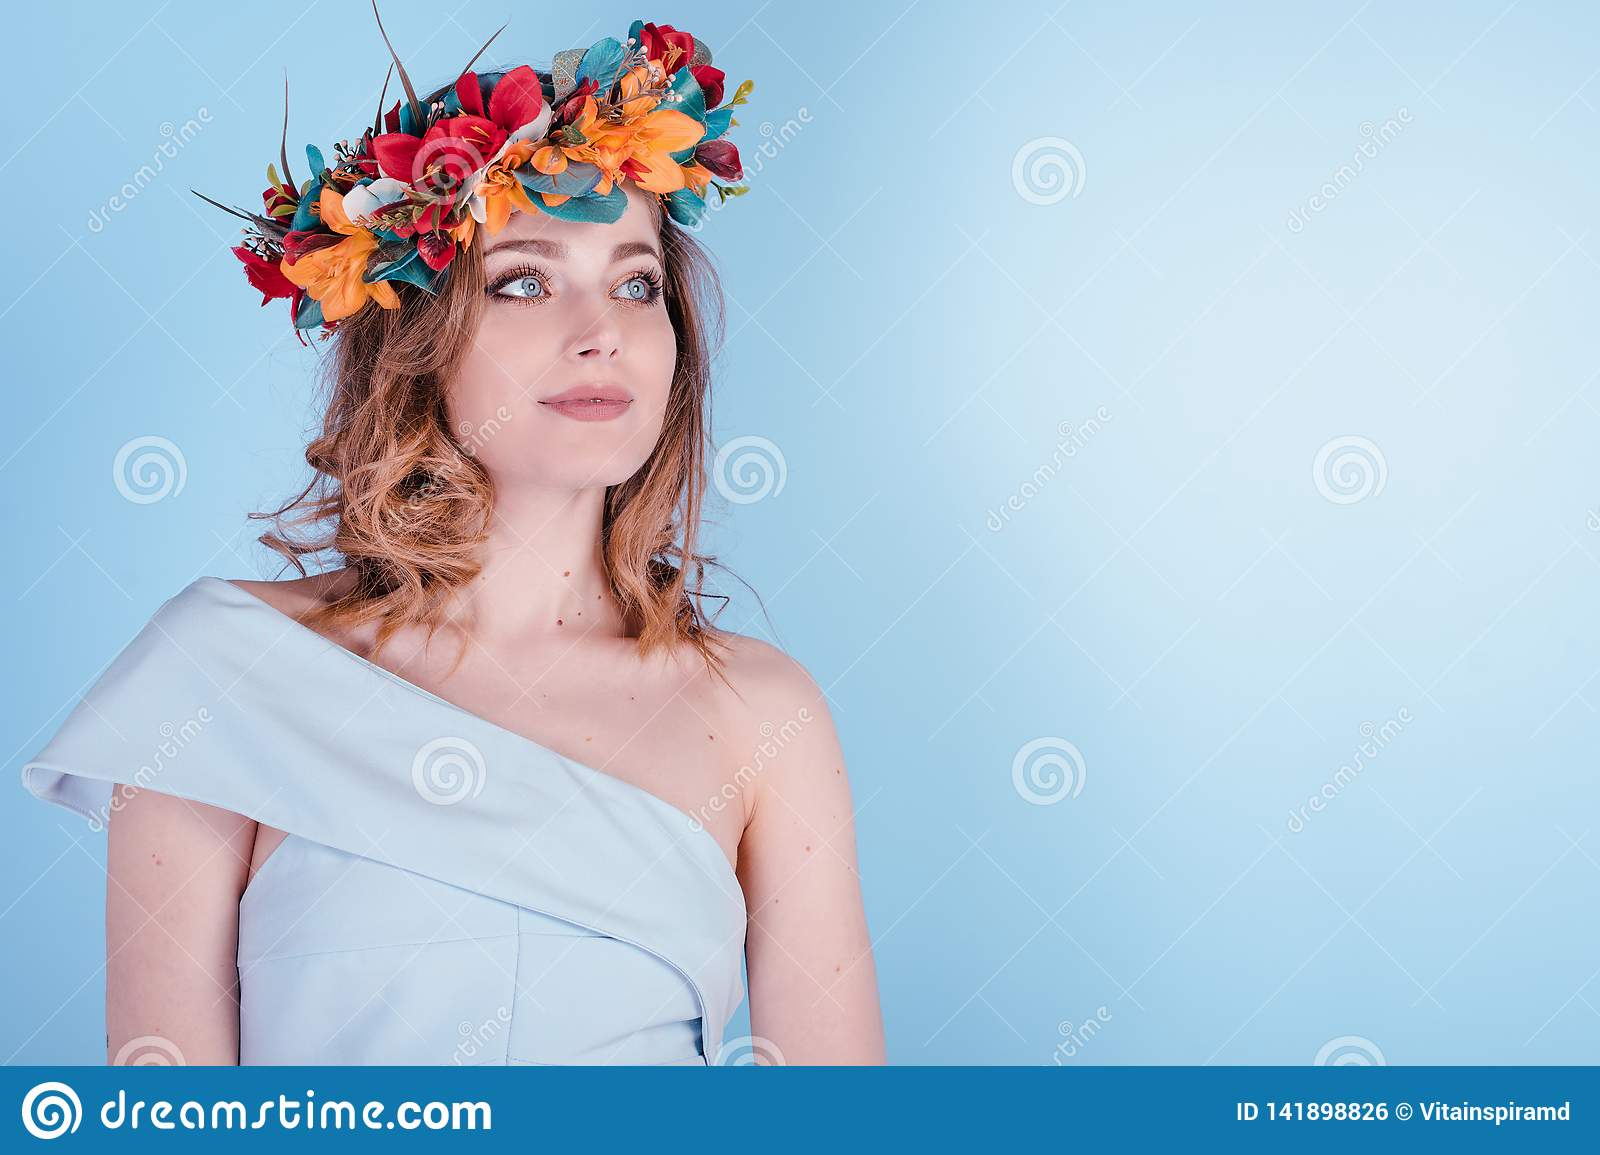 Beautiful young woman wearing floral headband tiara crown isolated light blue background, smiling